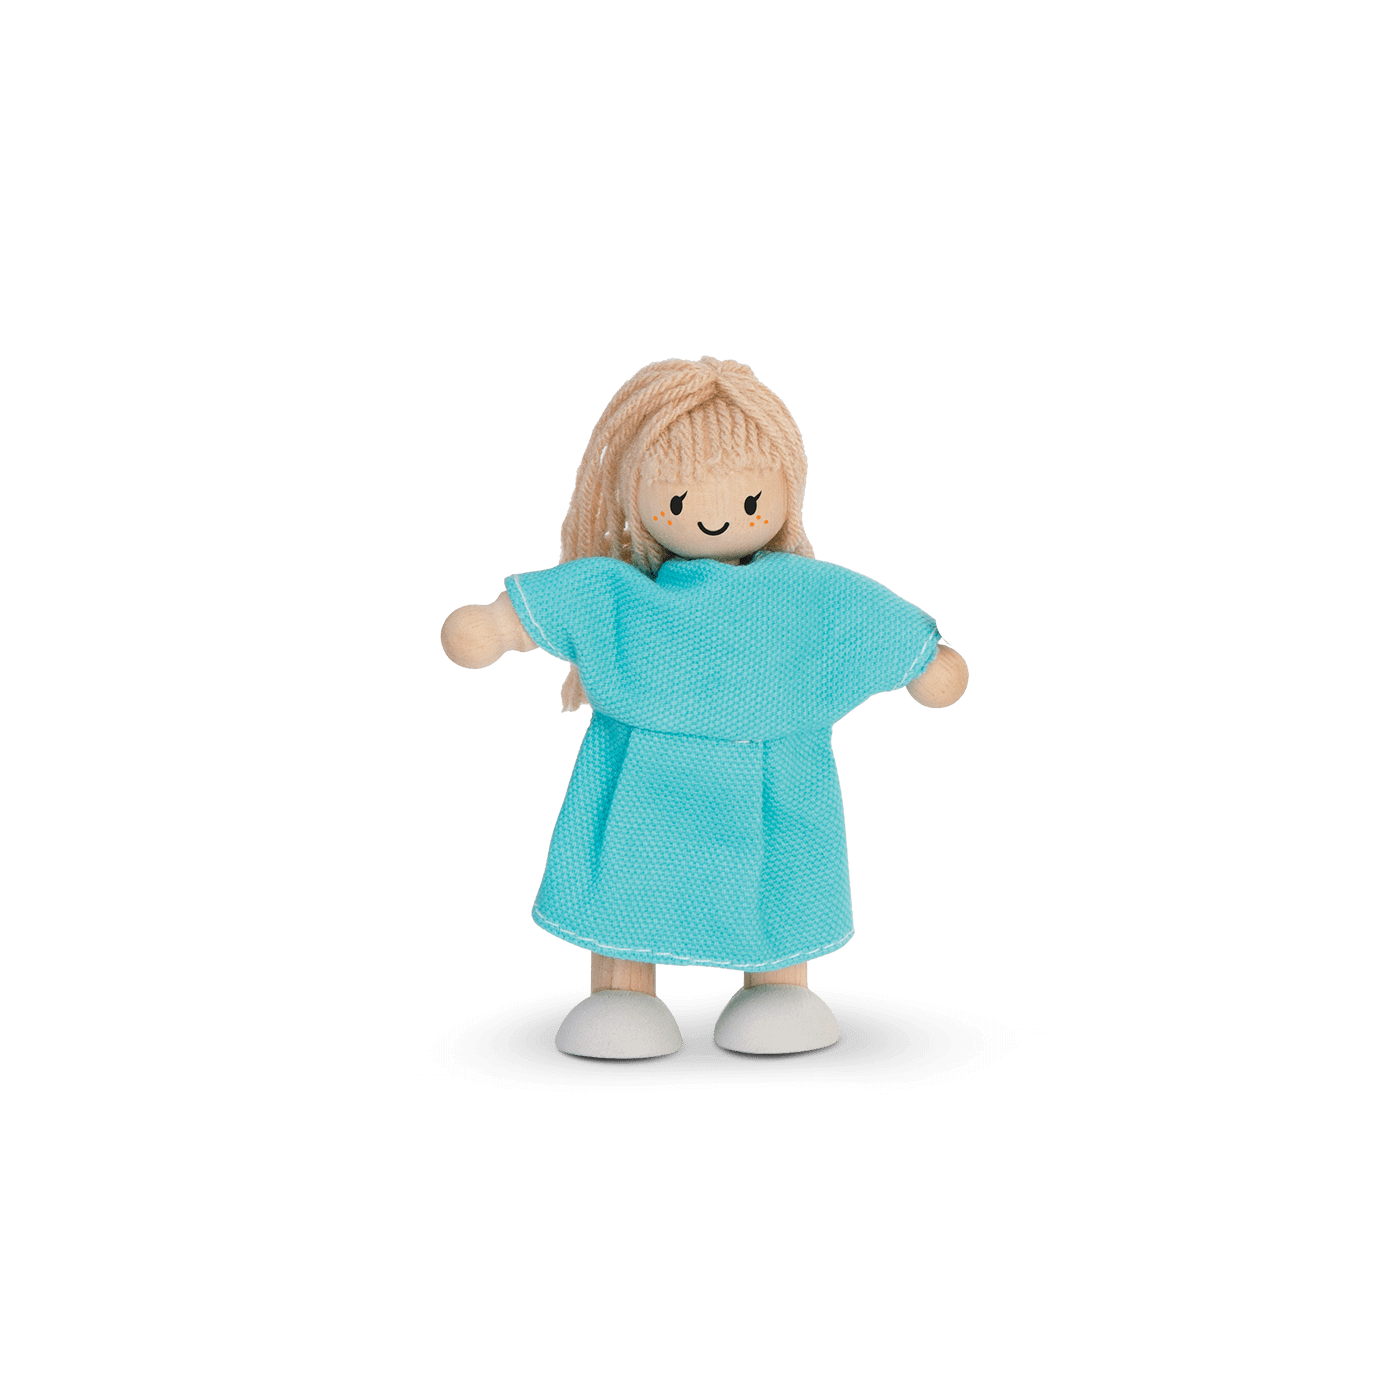 1379_PlanToys_CAUCASIAN_GIRL_Pretend_Play_Imagination_Social_Language_and_Communications_Coordination_Creative_Emotion_3yrs_Wooden_toys_Education_toys_Safety_Toys_Non-toxic_0.png